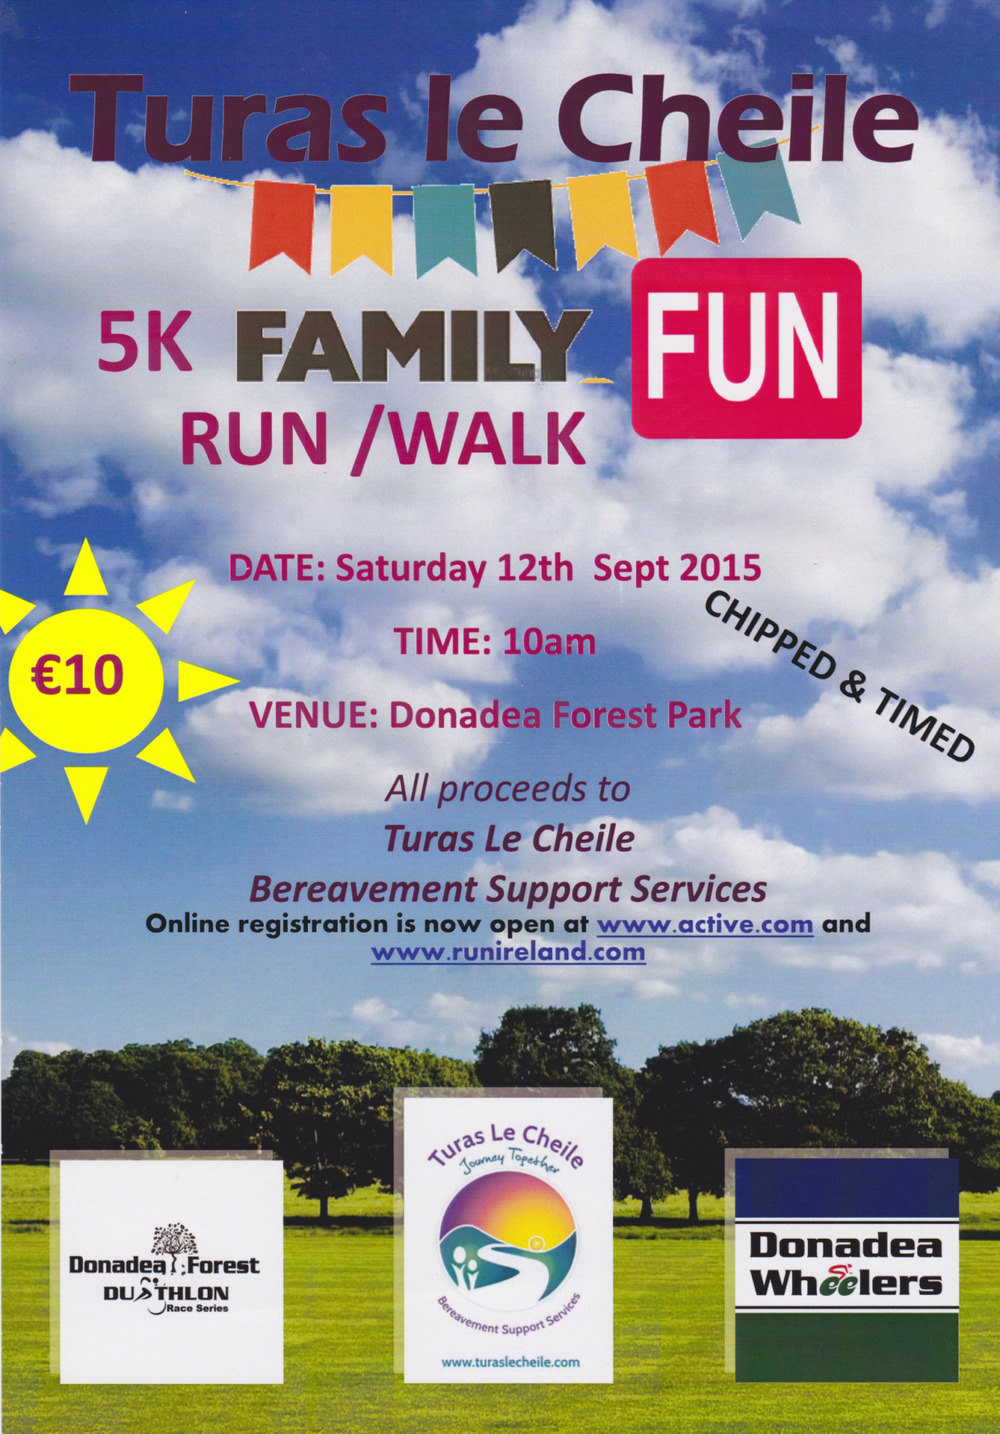 Turas le Cheile have been a great support to the school in recent times and ask that you might consider taking part in this 5k family activity.